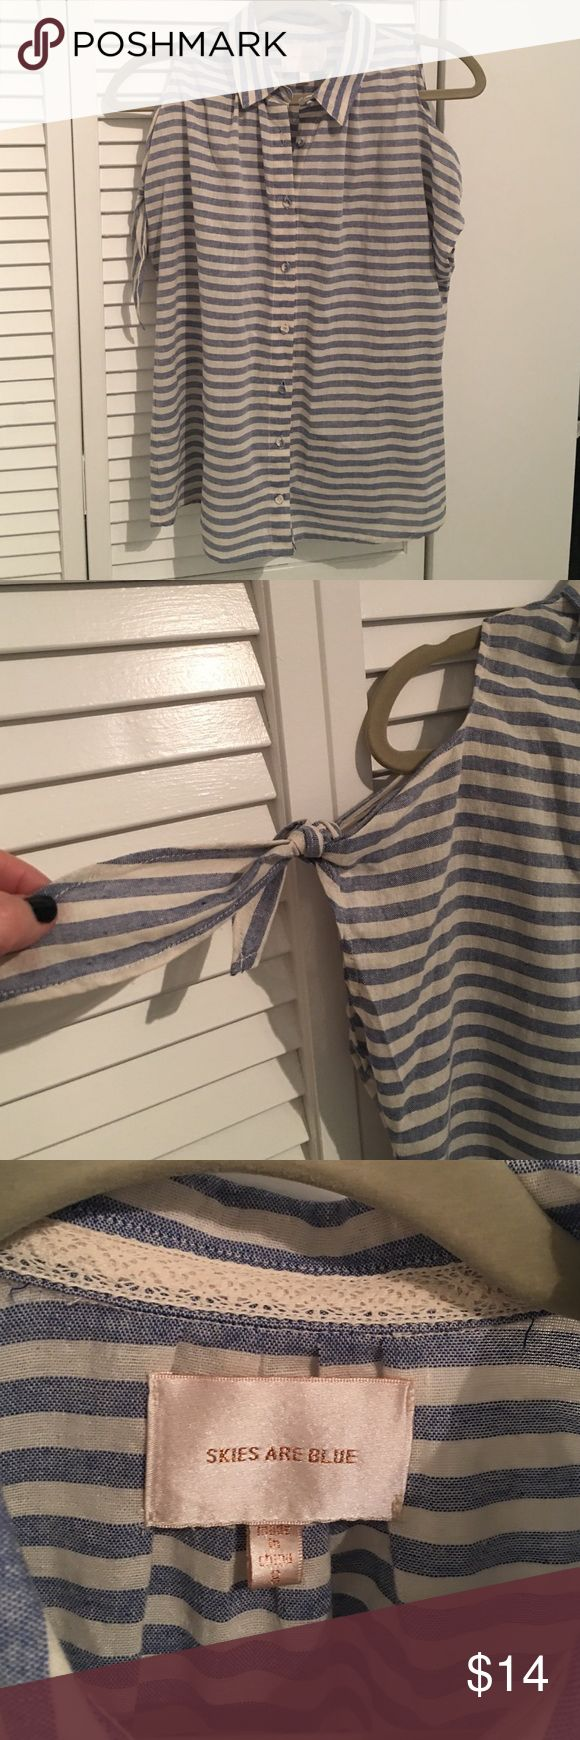 Skies Are Blue Striped cold shoulder top Buttons up with adorable fabric covered buttons. Never worn but took off tags. From Golden Tote. Skies Are Blue Tops Blouses